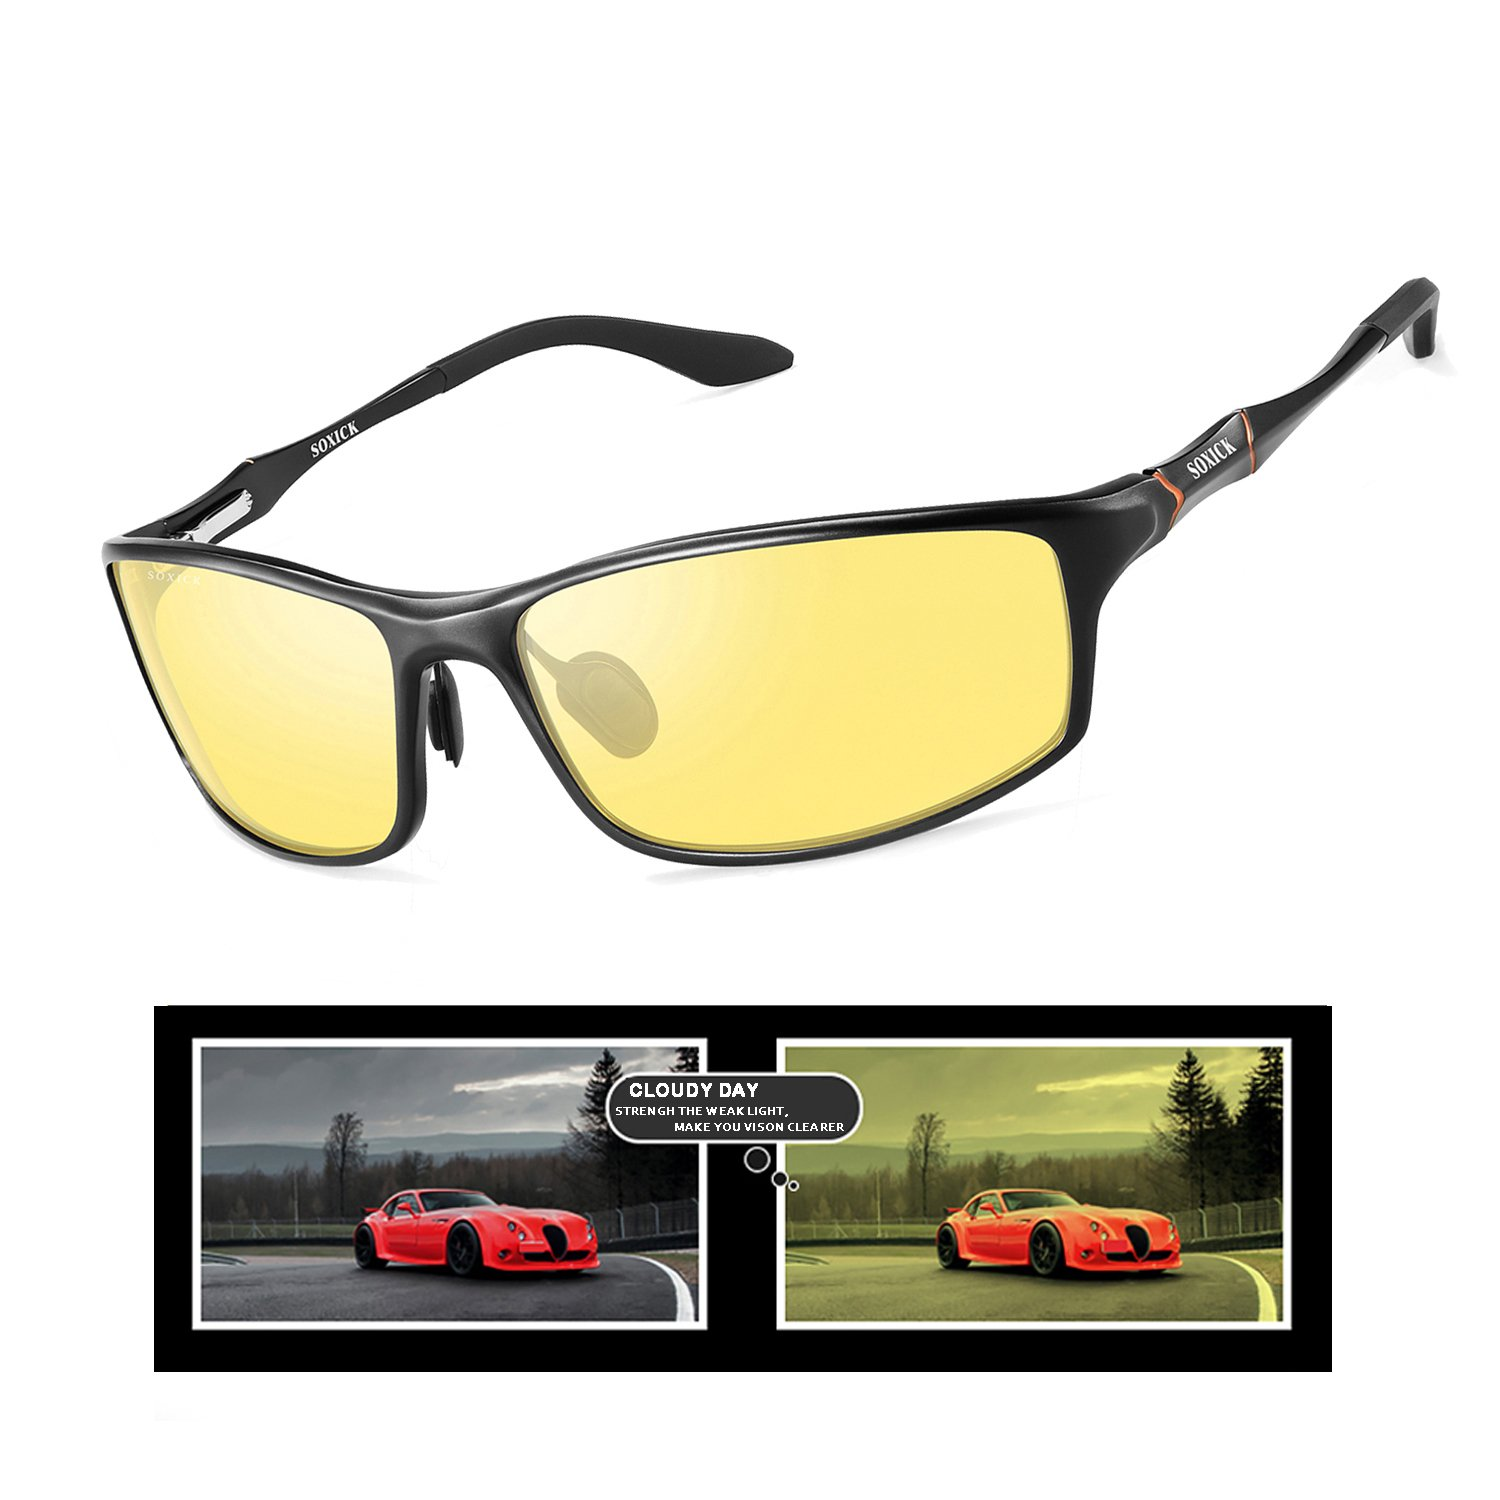 SOXICK Night Driving Glasses for Men Women UV400 Protection Metal Frame Night Vision Safety Glasses